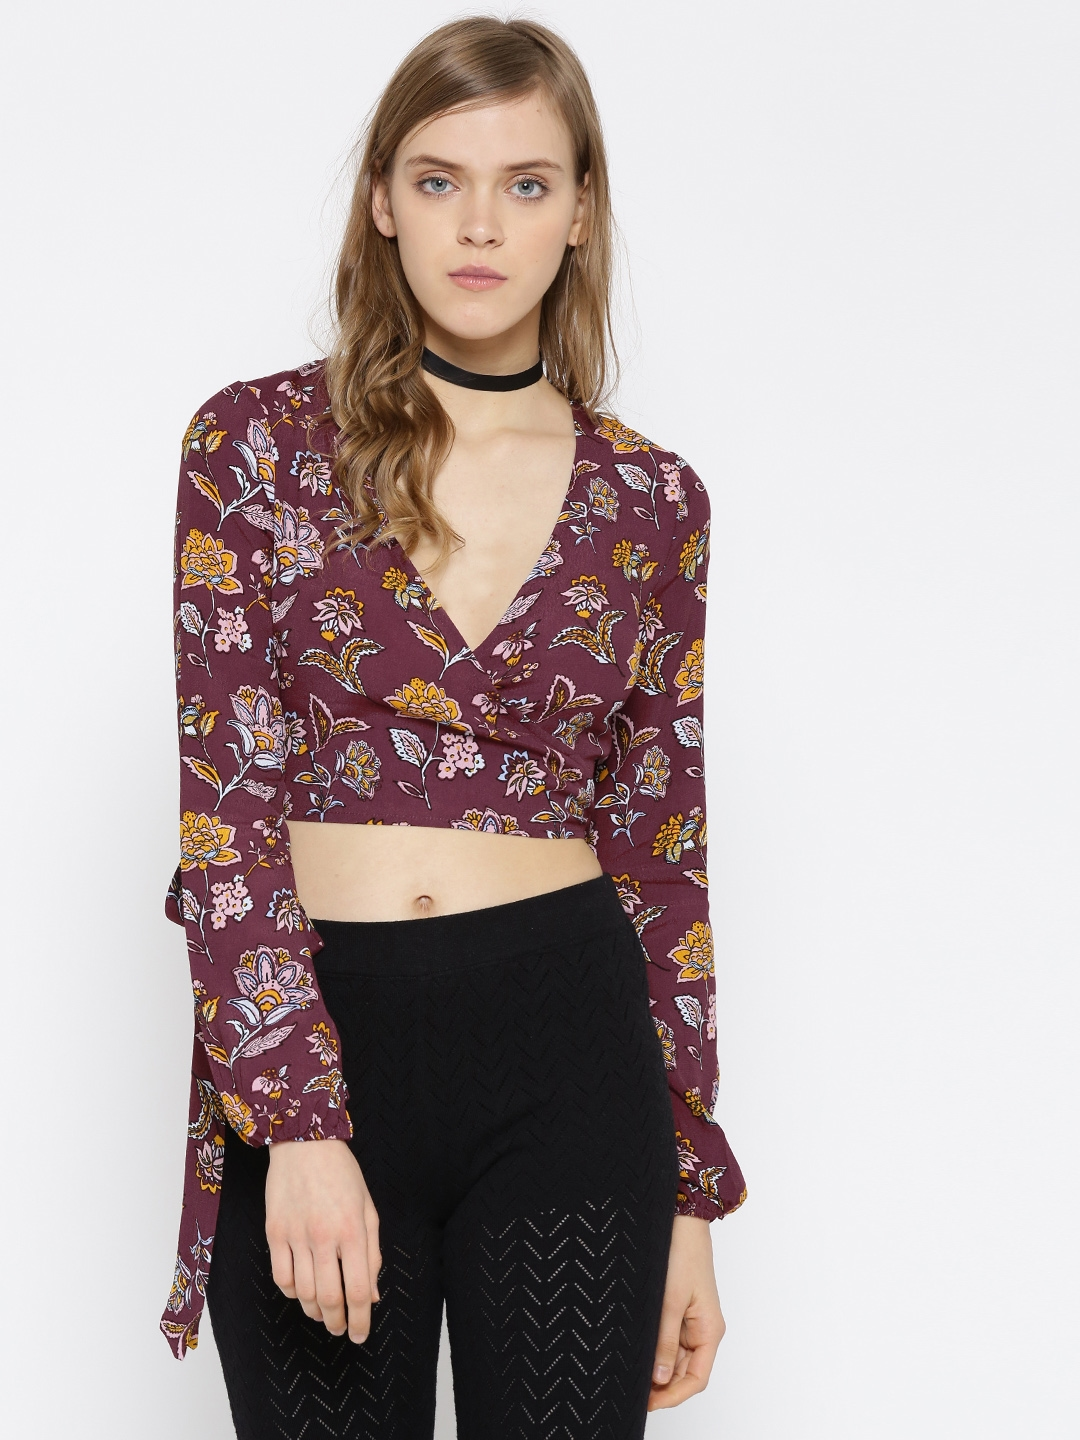 be3b3f278d05a7 Buy FOREVER 21 Women Burgundy Floral Print Crop Top - Tops for Women ...